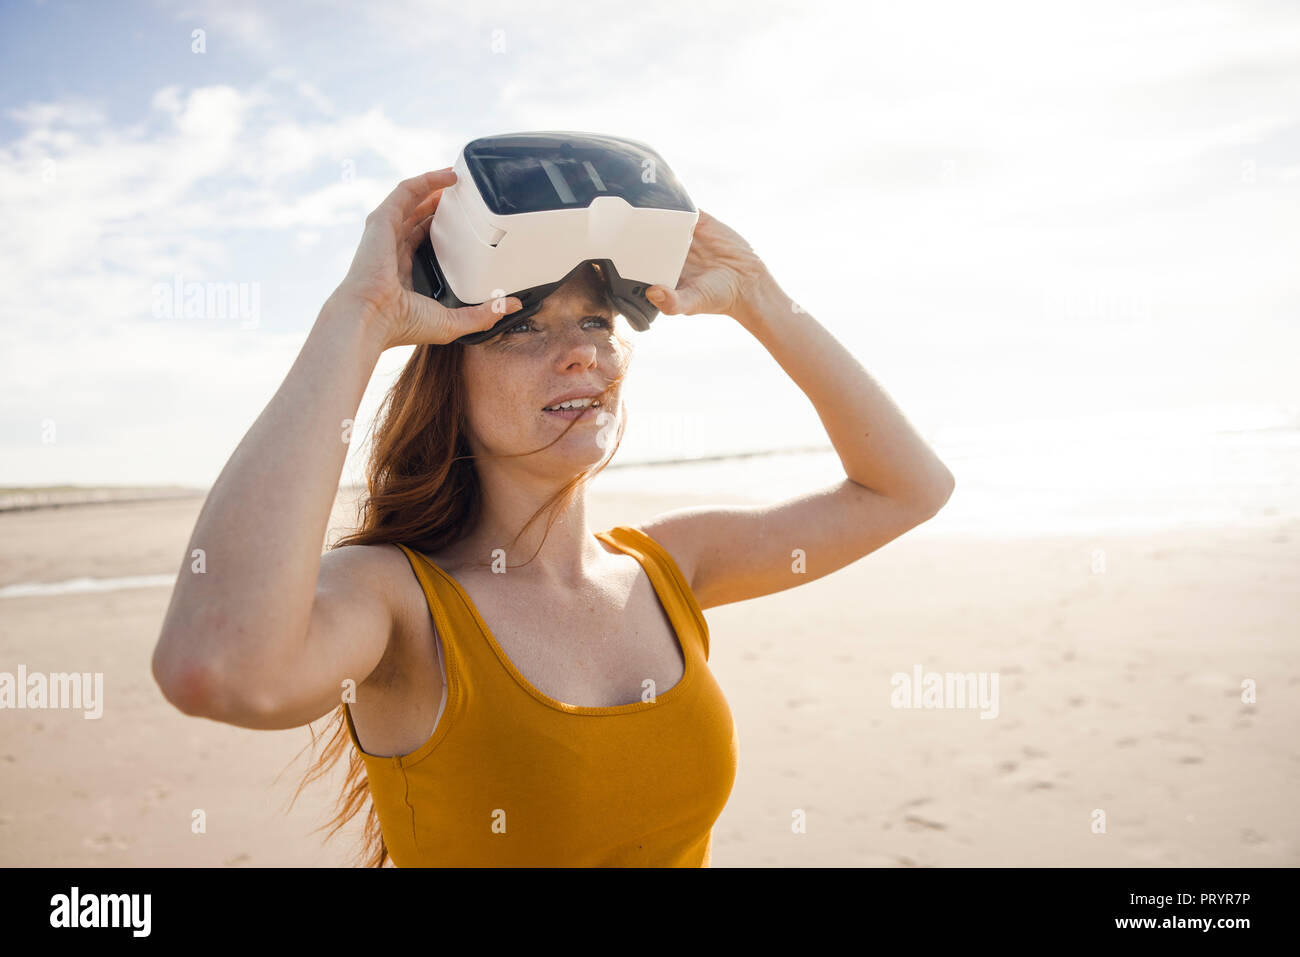 Redheaded woman using VR glasses on the beach - Stock Image